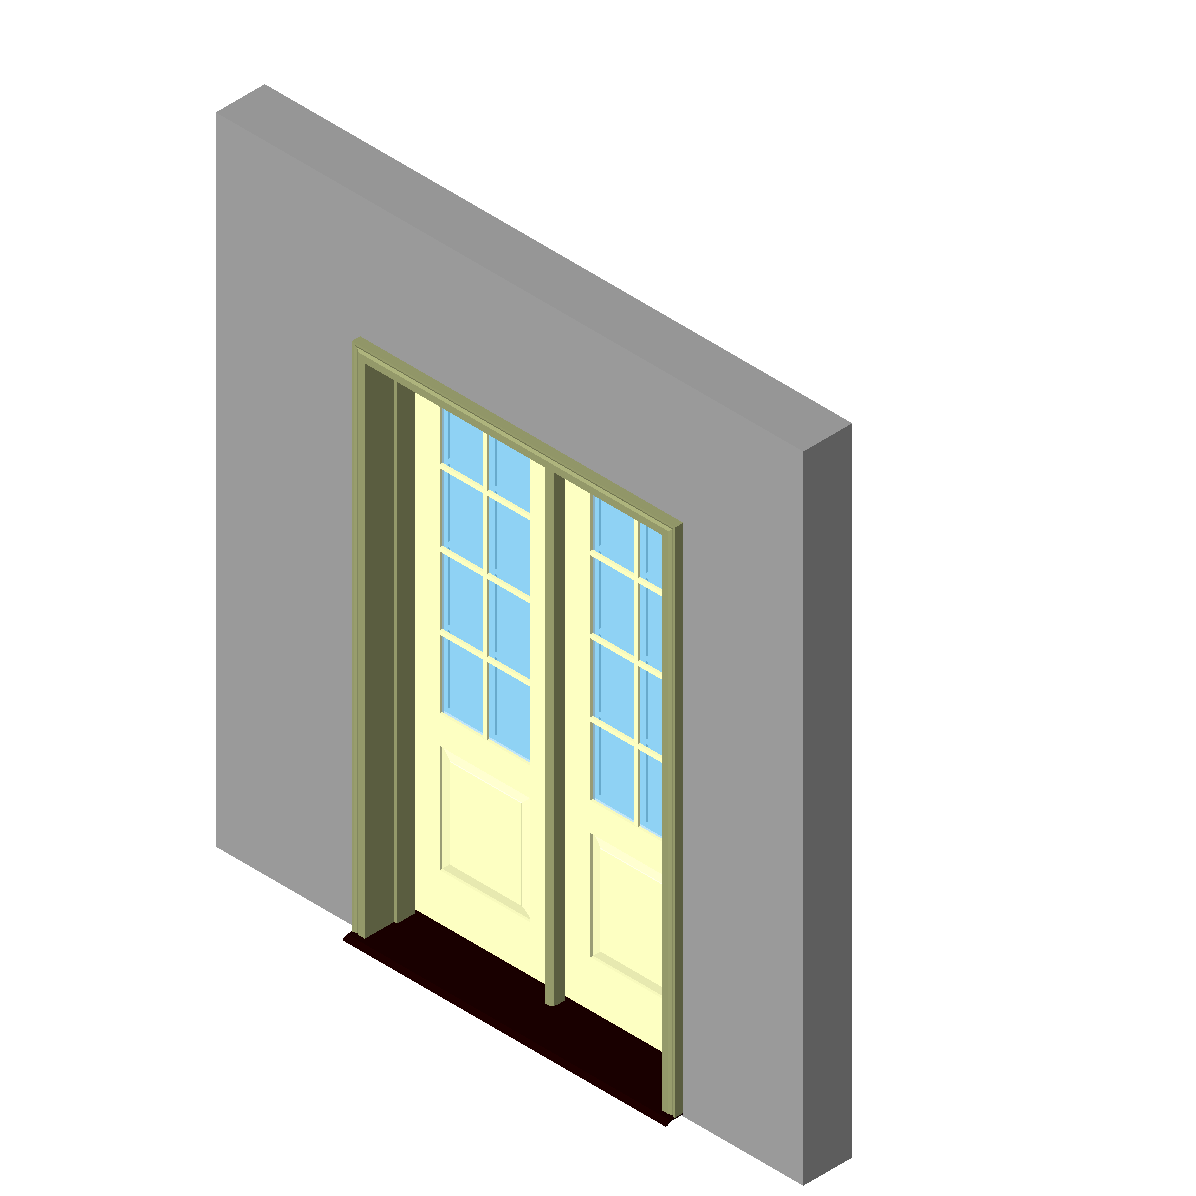 Door_Inswing_Entrance_2-Wide_1-Panel_Handicap_Sill_Kolbe-4Ft 2 3_16In W x 6Ft 10 23_32In H